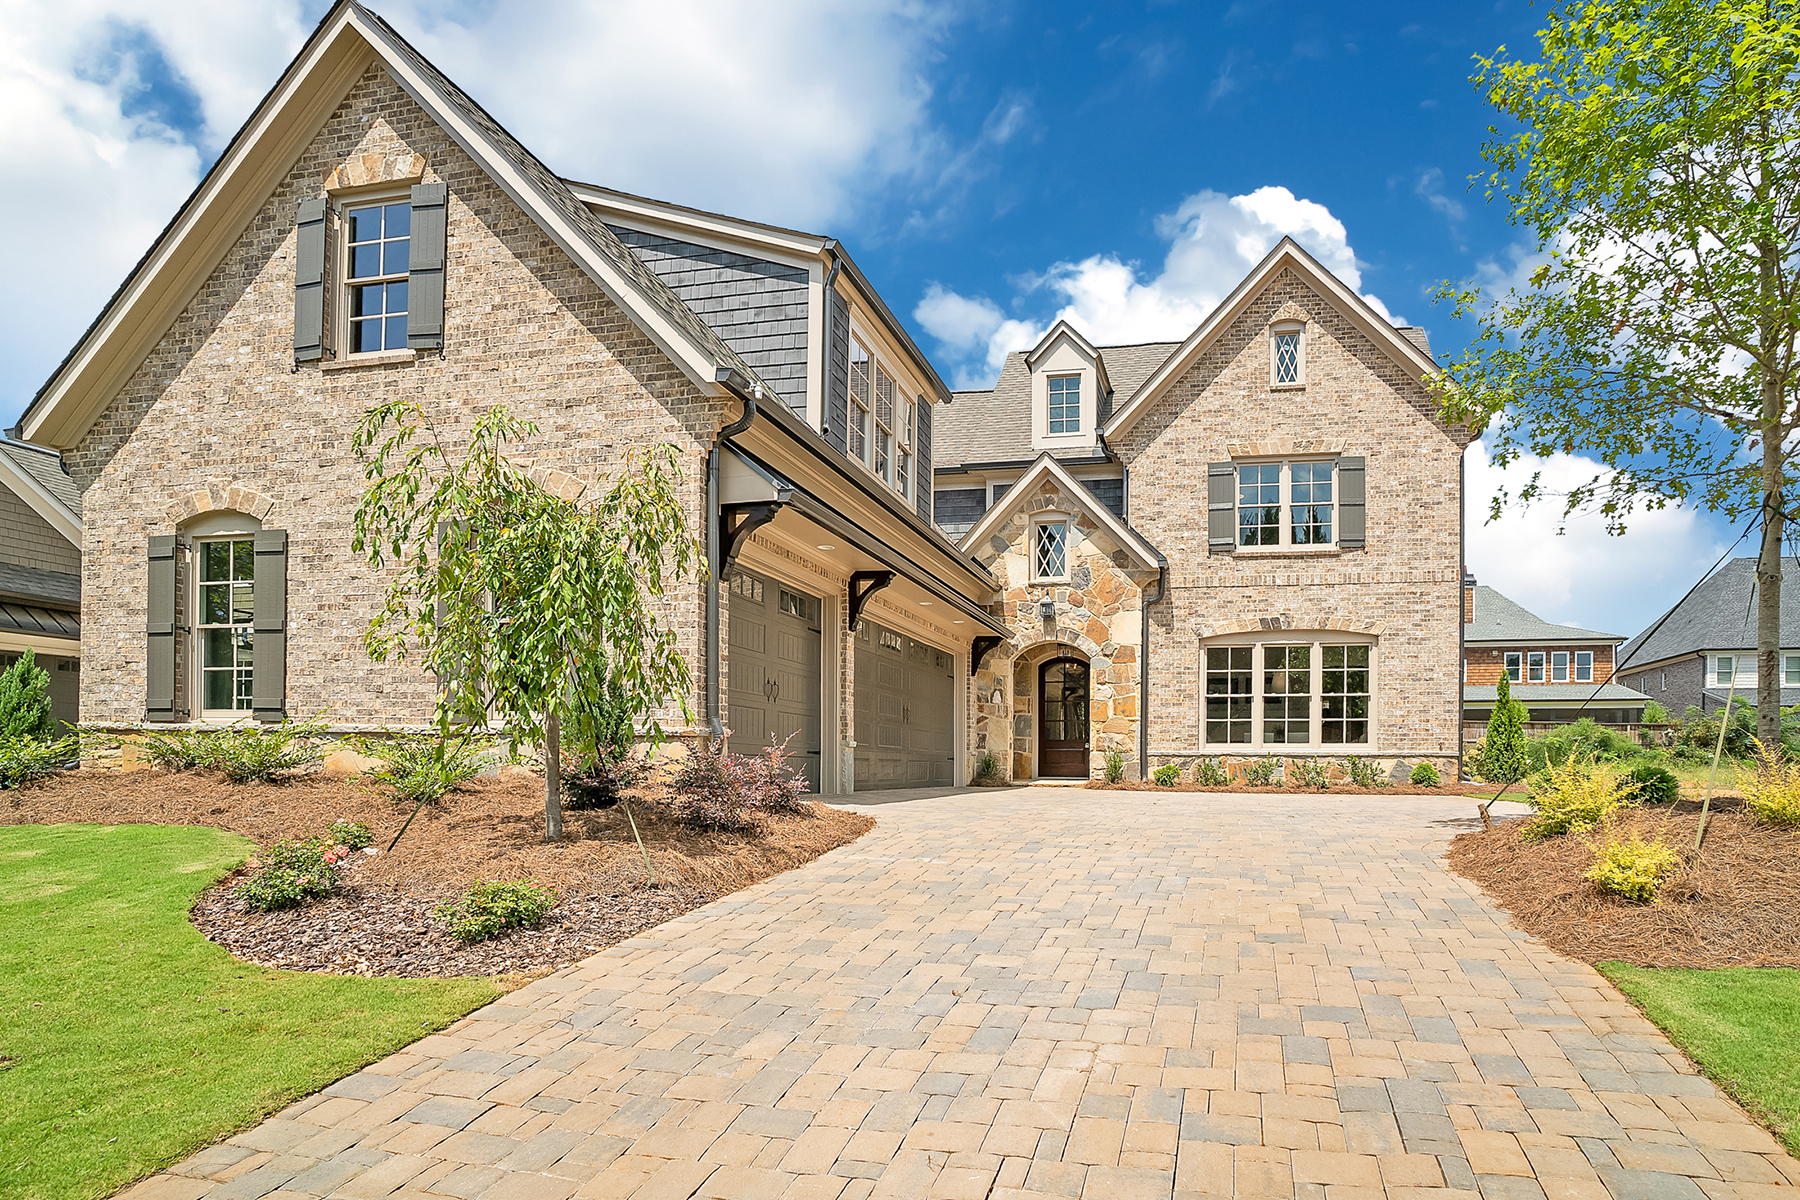 New Luxury Home In The Heart Of East Cobb 4588 Oakside Point Marietta, Georgia 30067 Hoa Kỳ